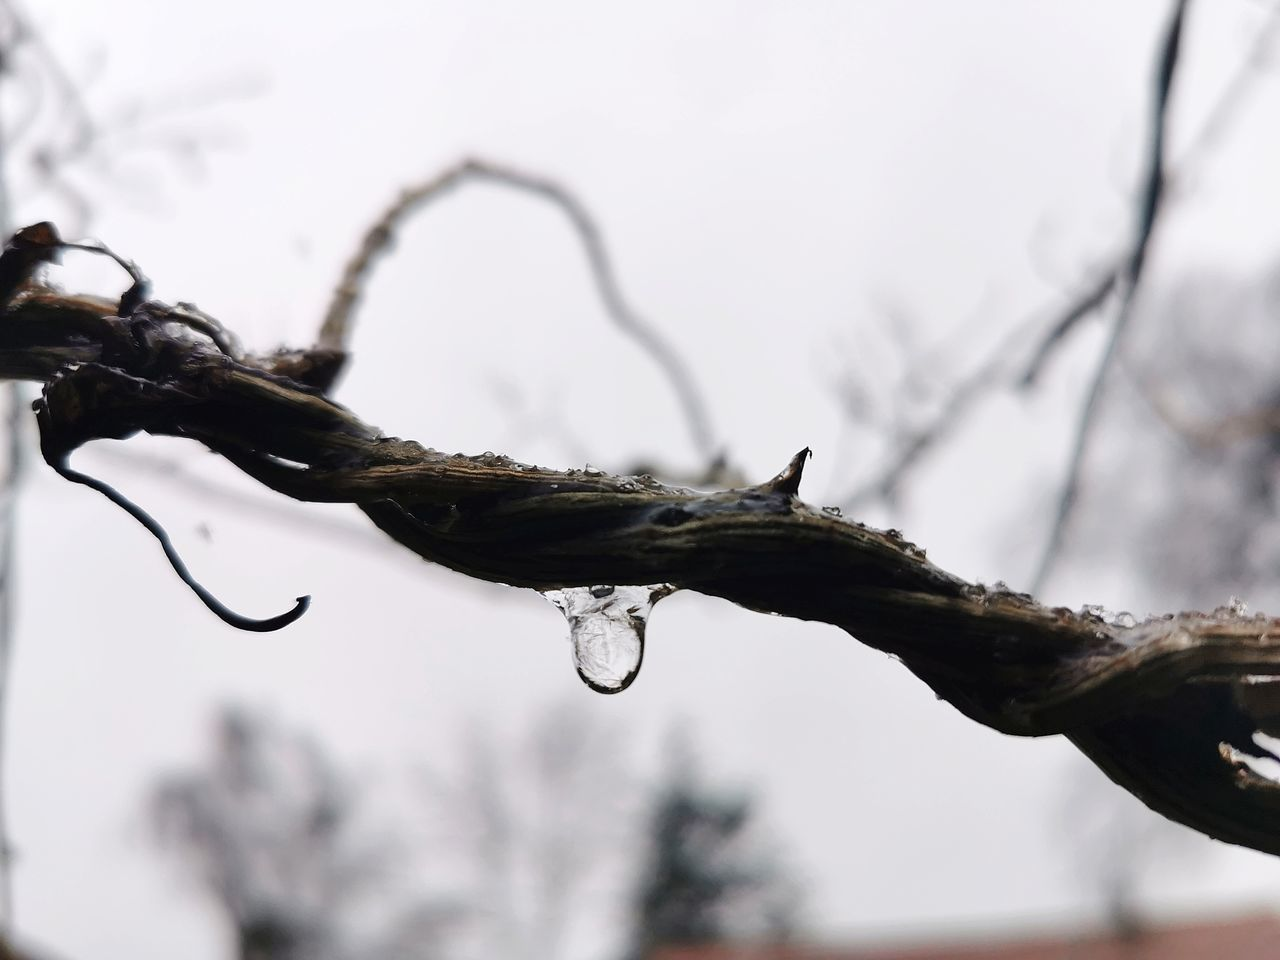 CLOSE-UP OF WATER DROPS ON TWIG